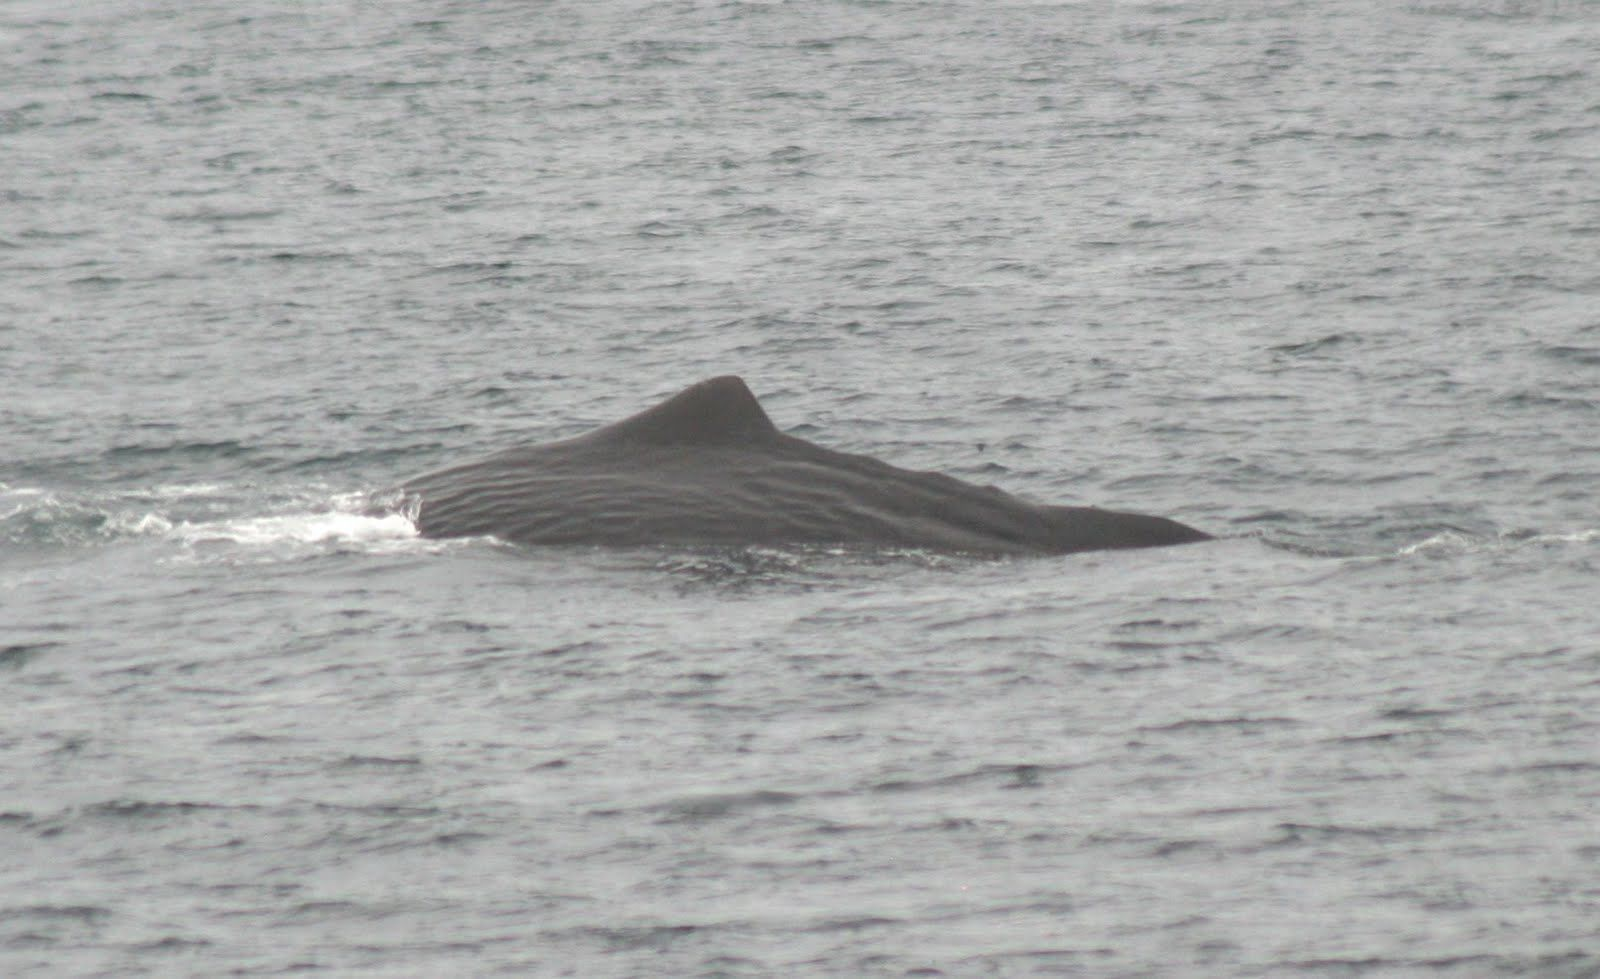 Sperm Whale Image / Blue Ocean Society for Marine Conservation